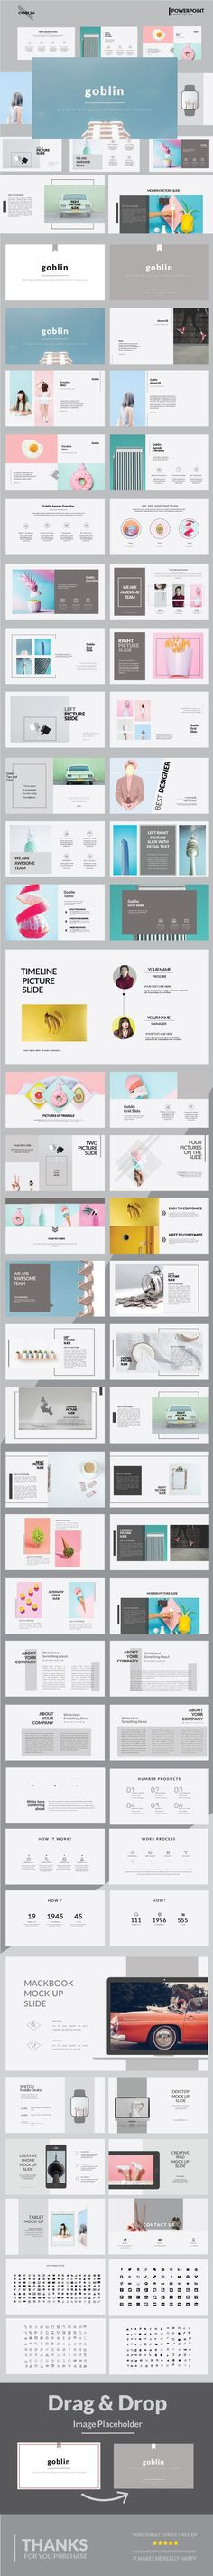 Goblin Multipurpose PowerPoint Template - Business PowerPoint Templates